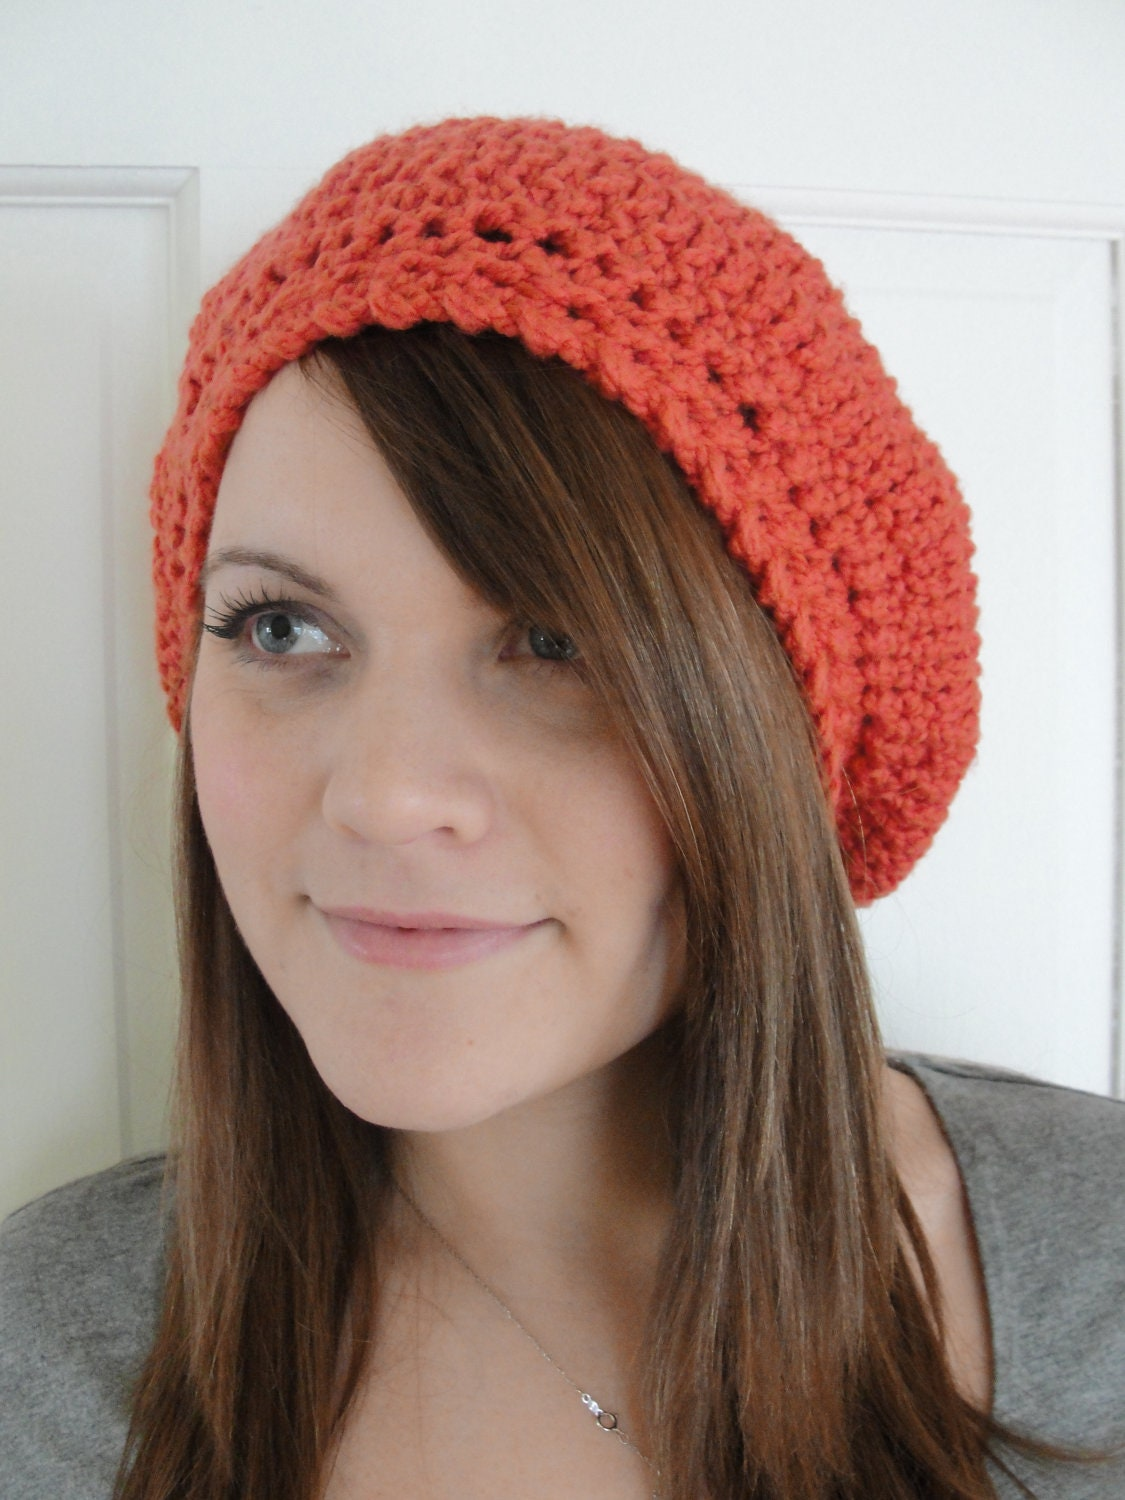 Crochet Slouchy Hat Patterns For Beginners : DIY CROCHET Pattern Hat SLOUCHY Beret by TooCuteCrochet on ...